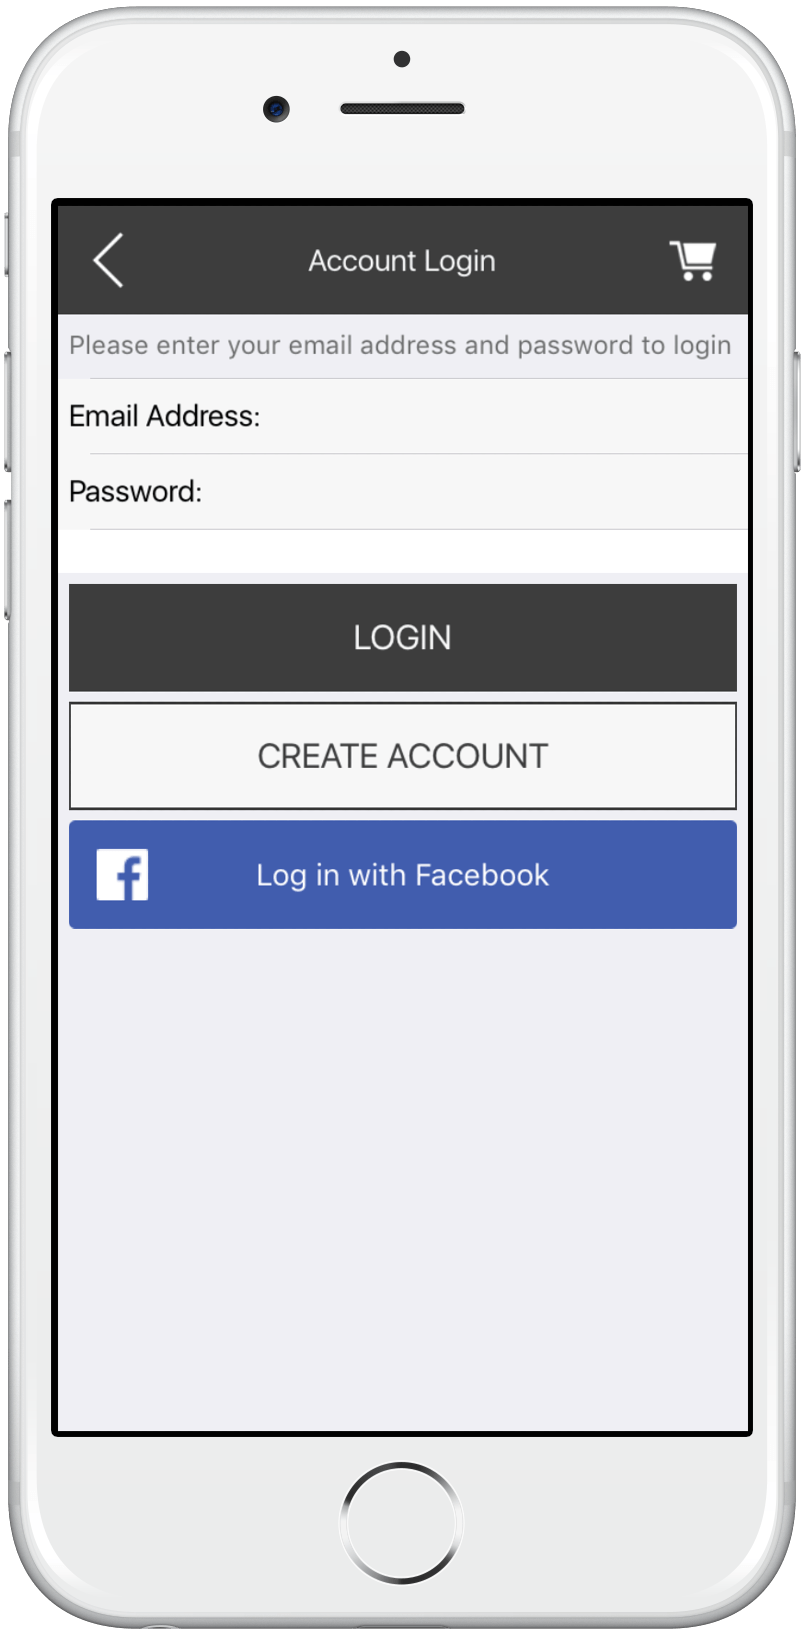 iPhone App Signup with Facebook